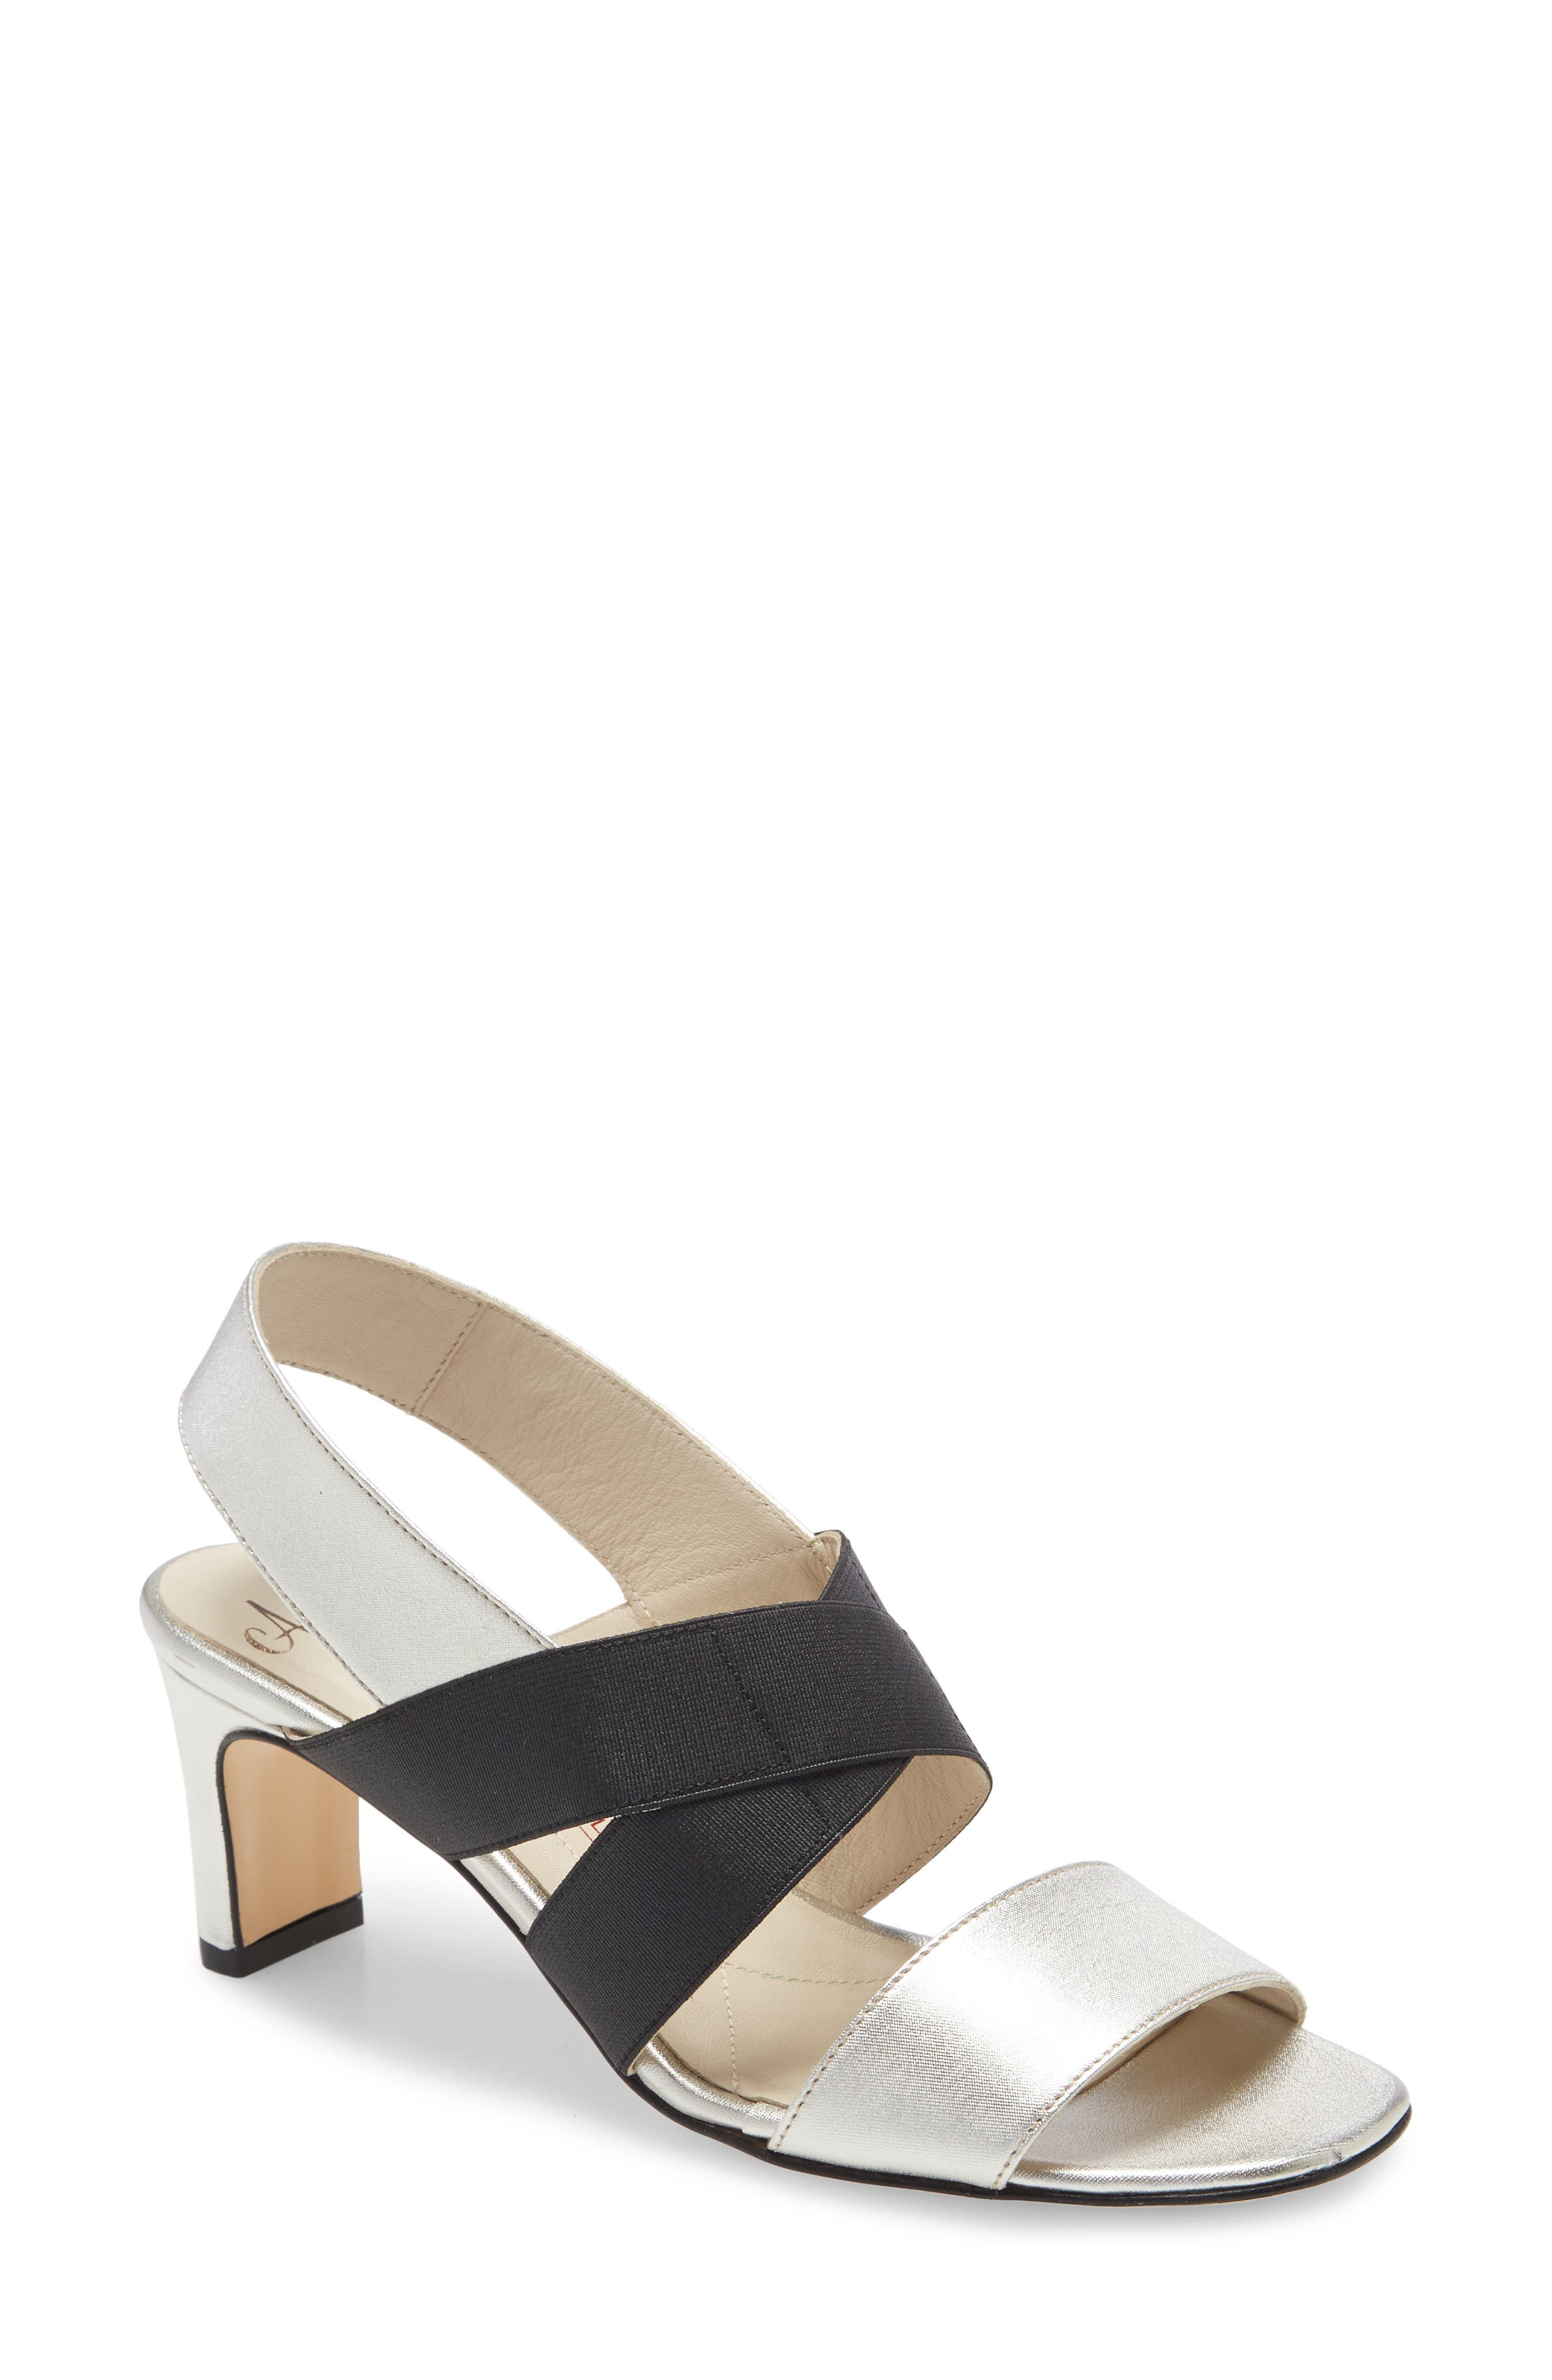 A balance of elegant and sporty, this slingback sandal wraps the foot with elastic straps and is set on a slender, rectangular heel. Style Name: Amalfi By Rangoni Etty Sandal (Women). Style Number: 5945326. Available in stores.